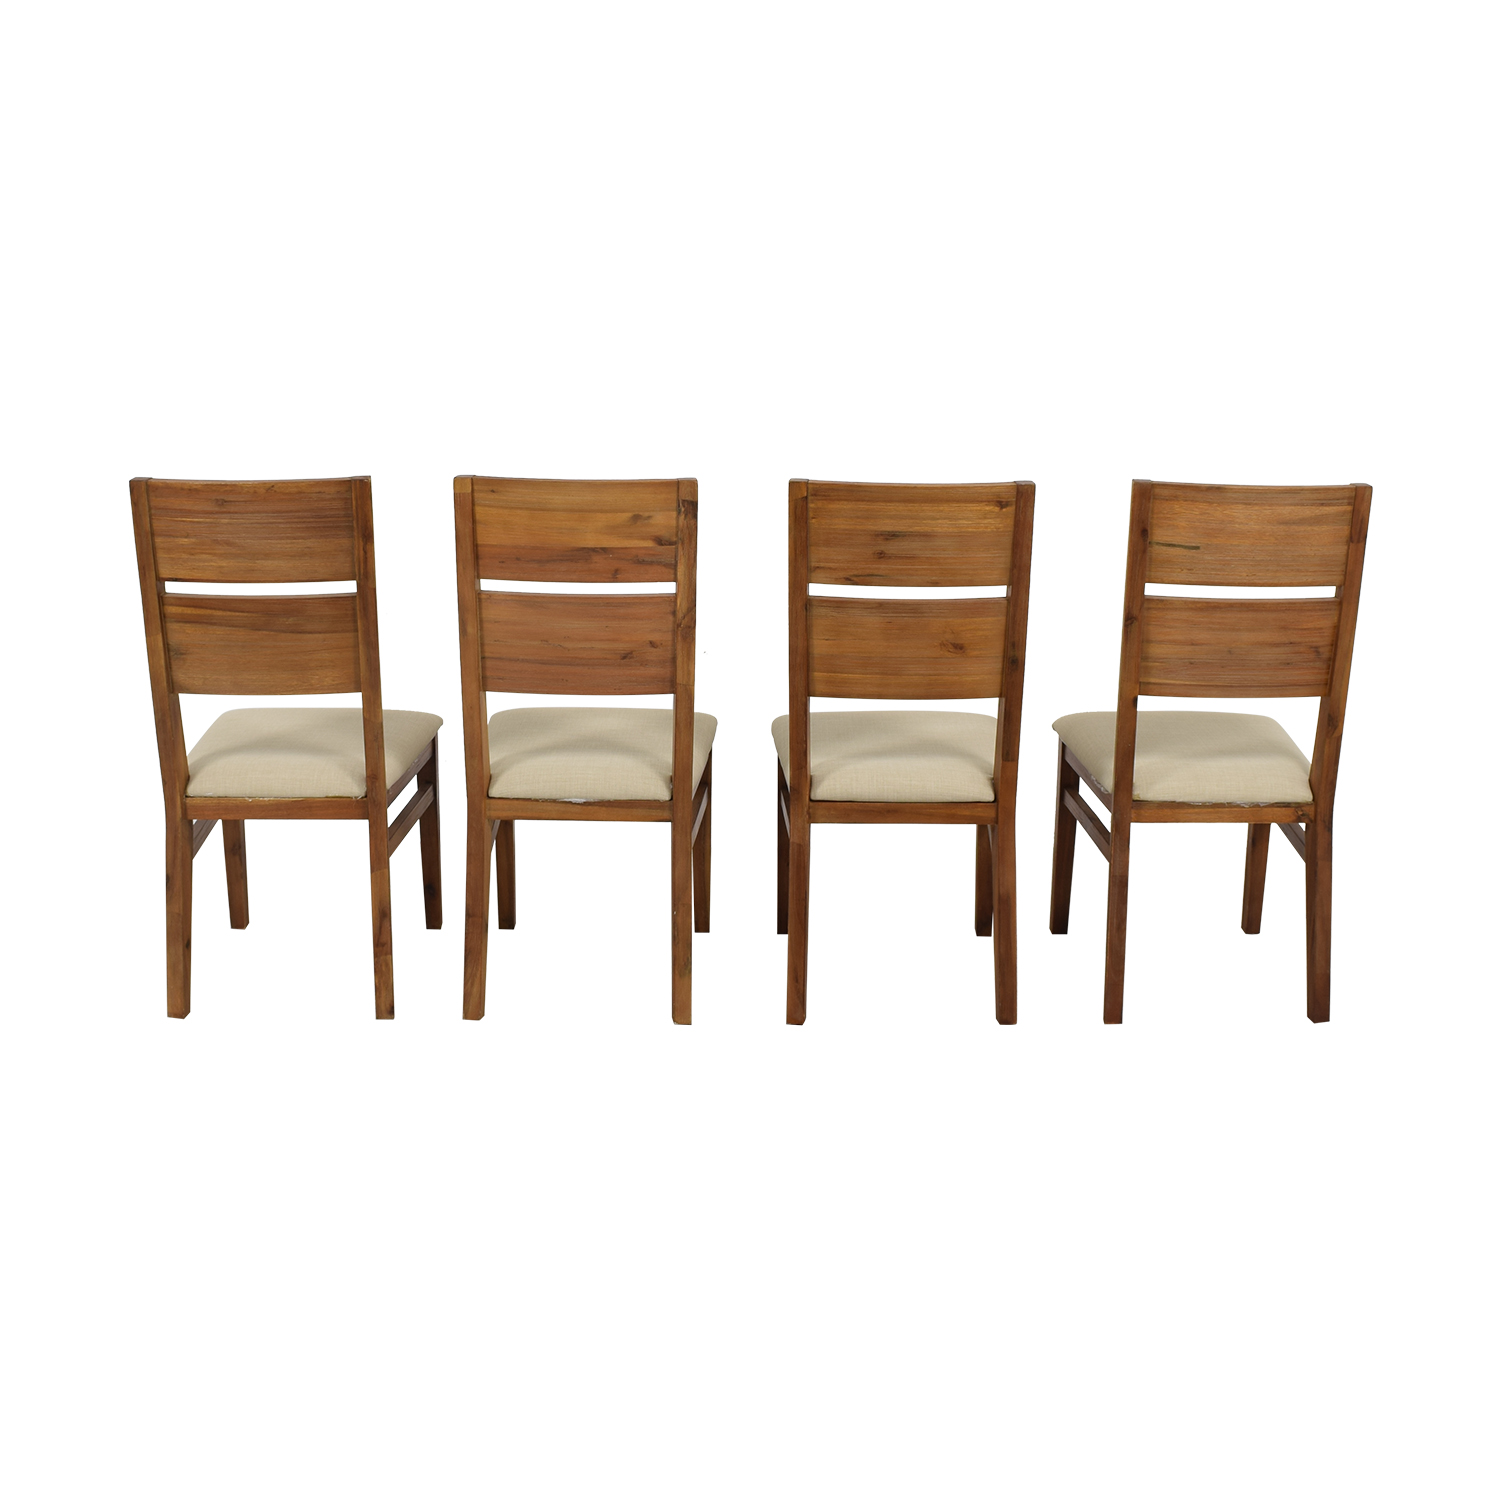 shop Macy's Dining Chairs Macy's Dining Chairs